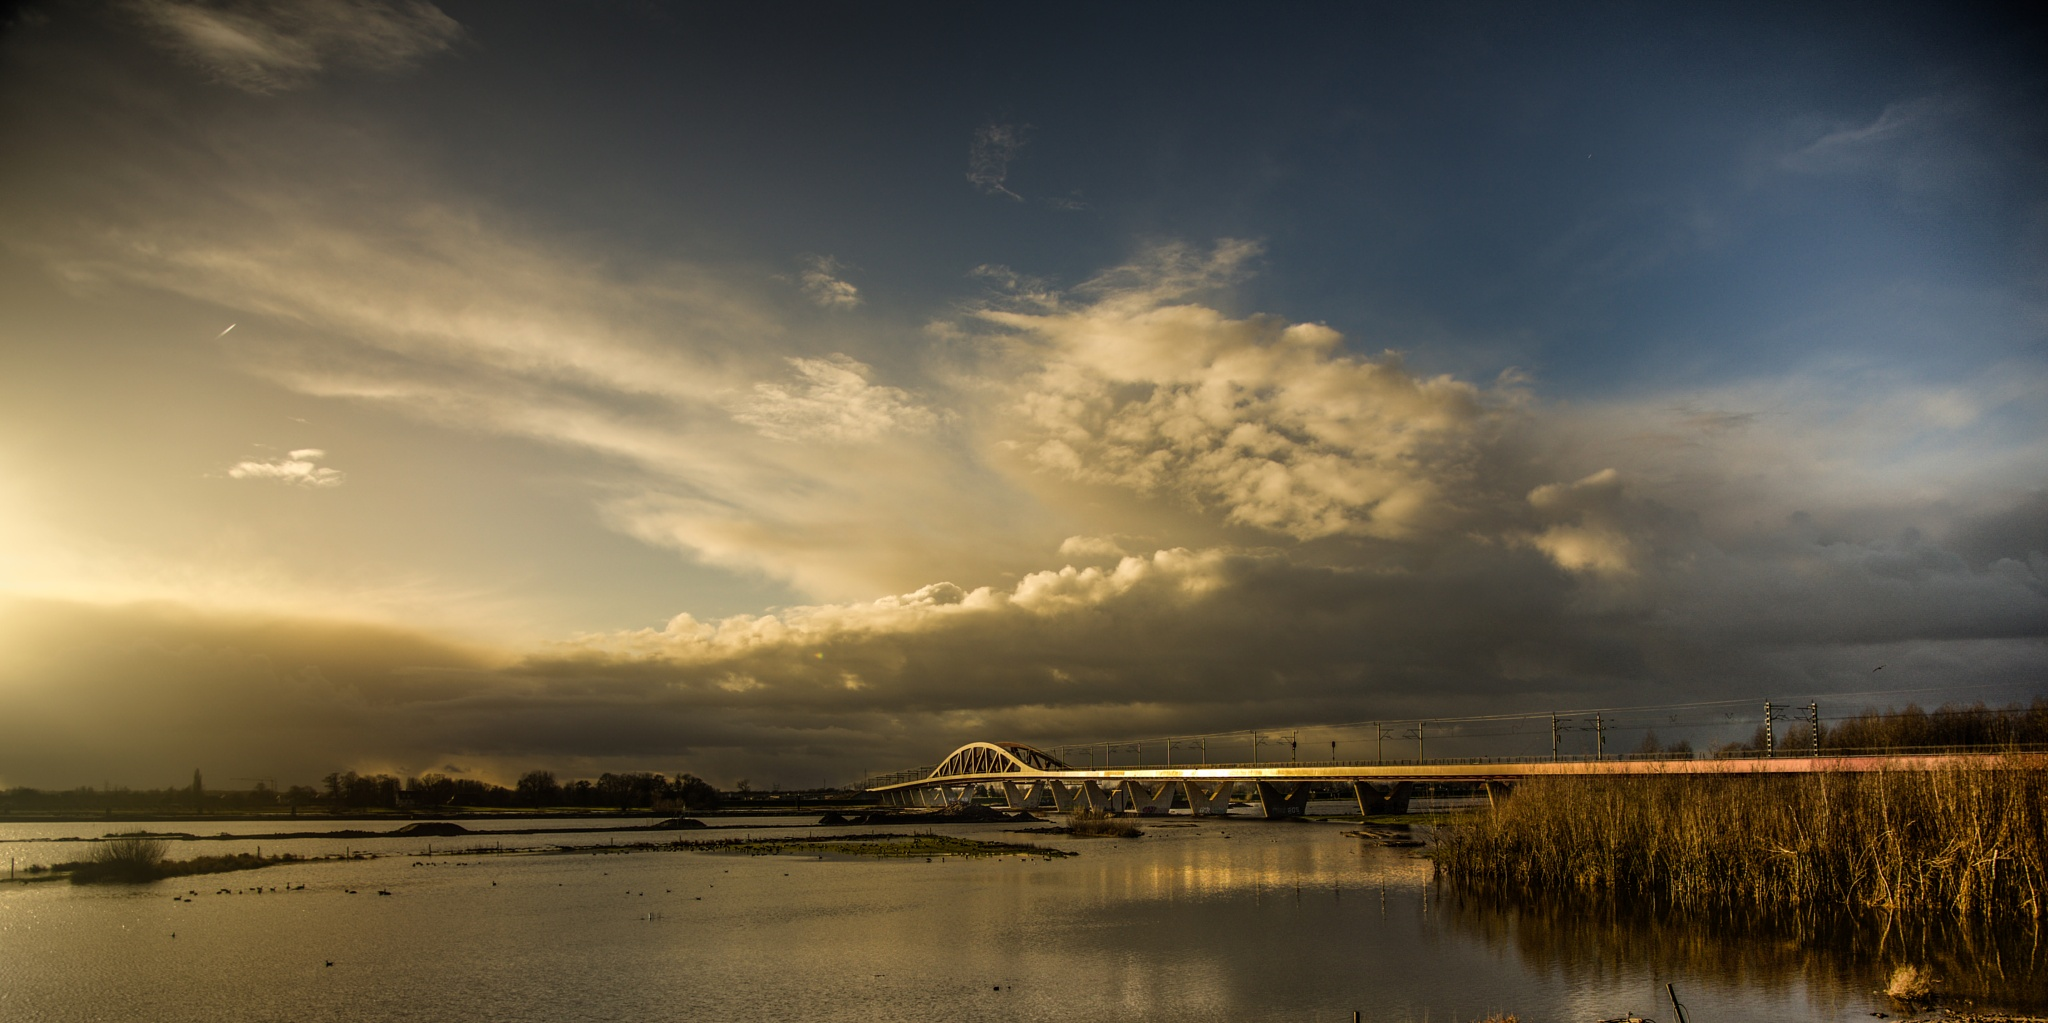 The IJssel  Zwolle The Netherlands by Mirjam Slotman-Martin